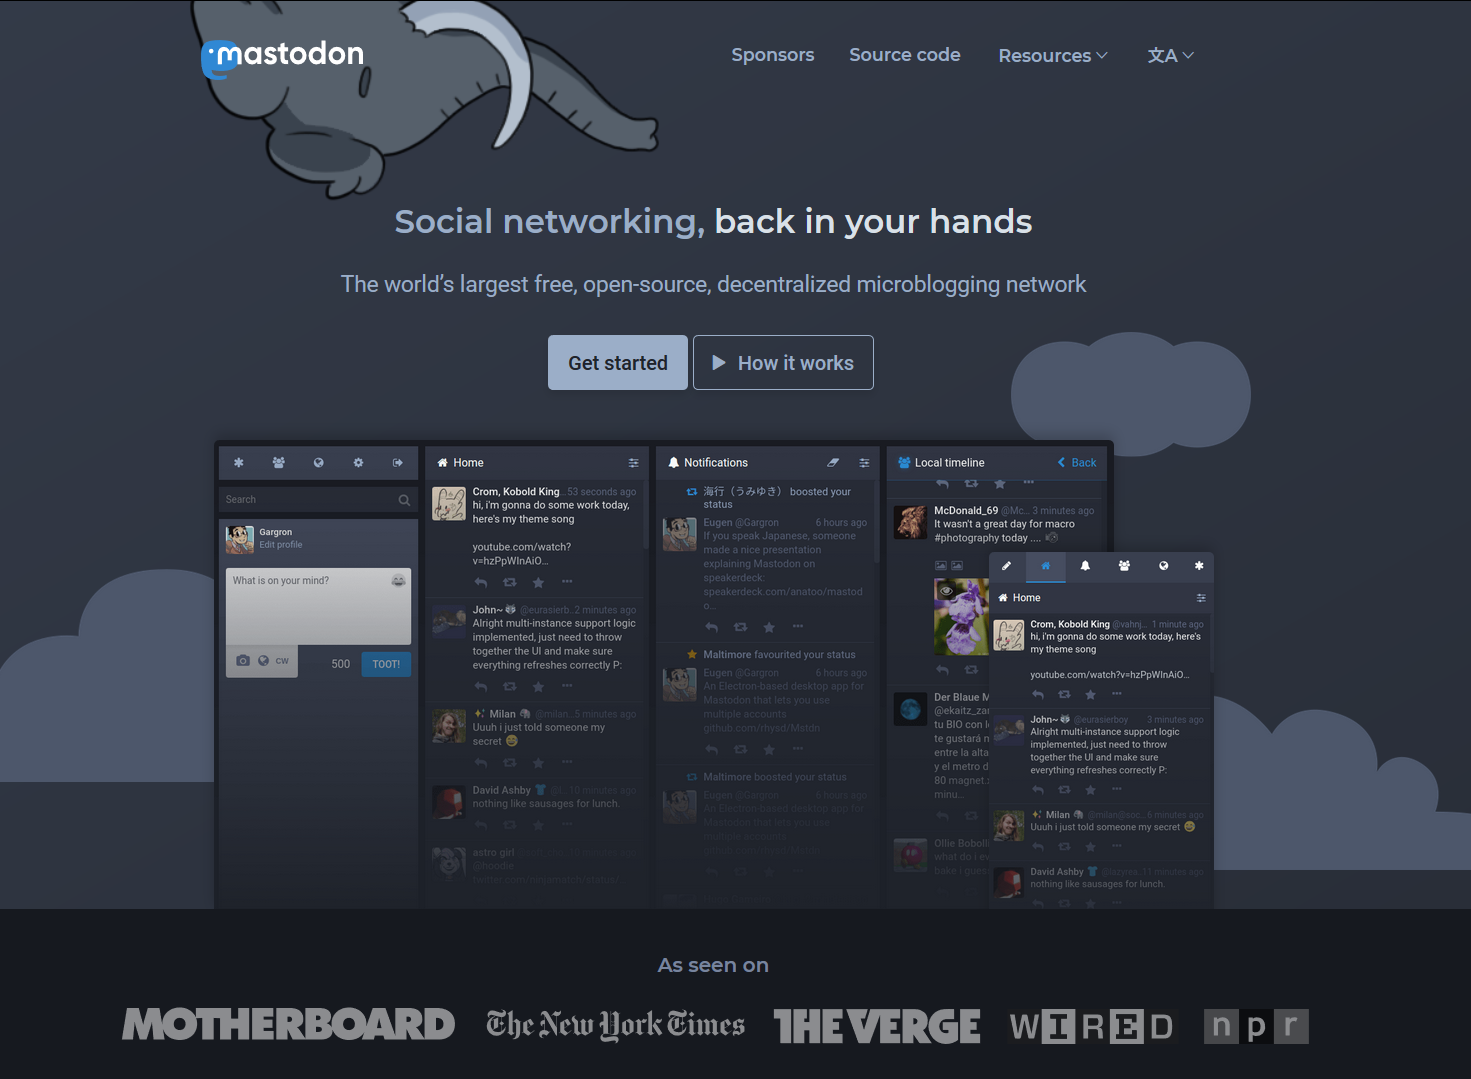 The landing page for Mastadon